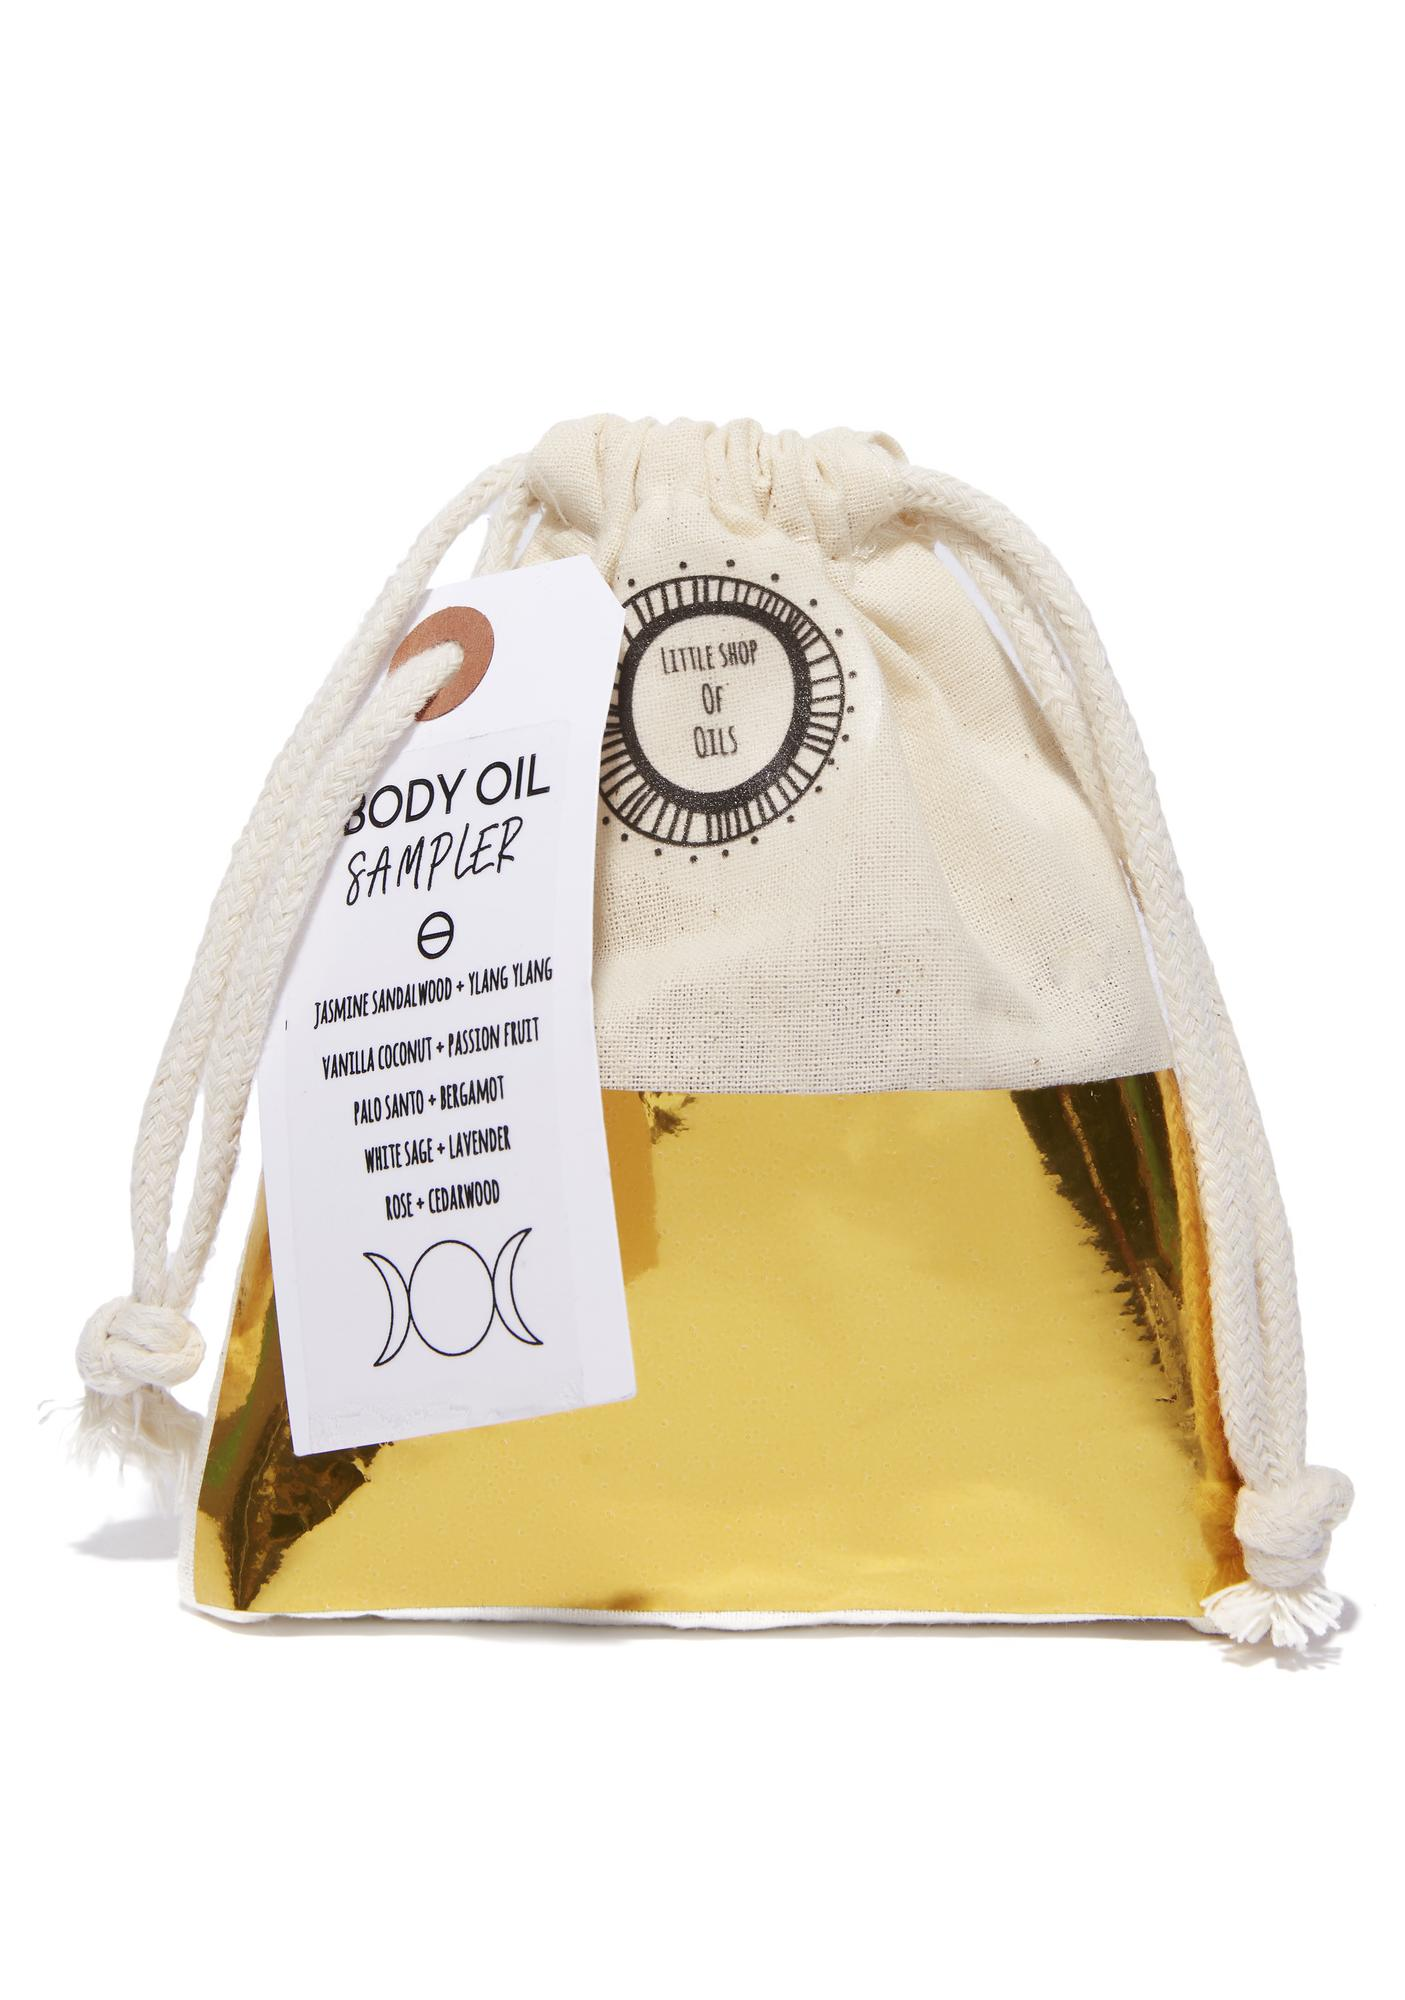 Little Shop of Oils Body Oil Sampler